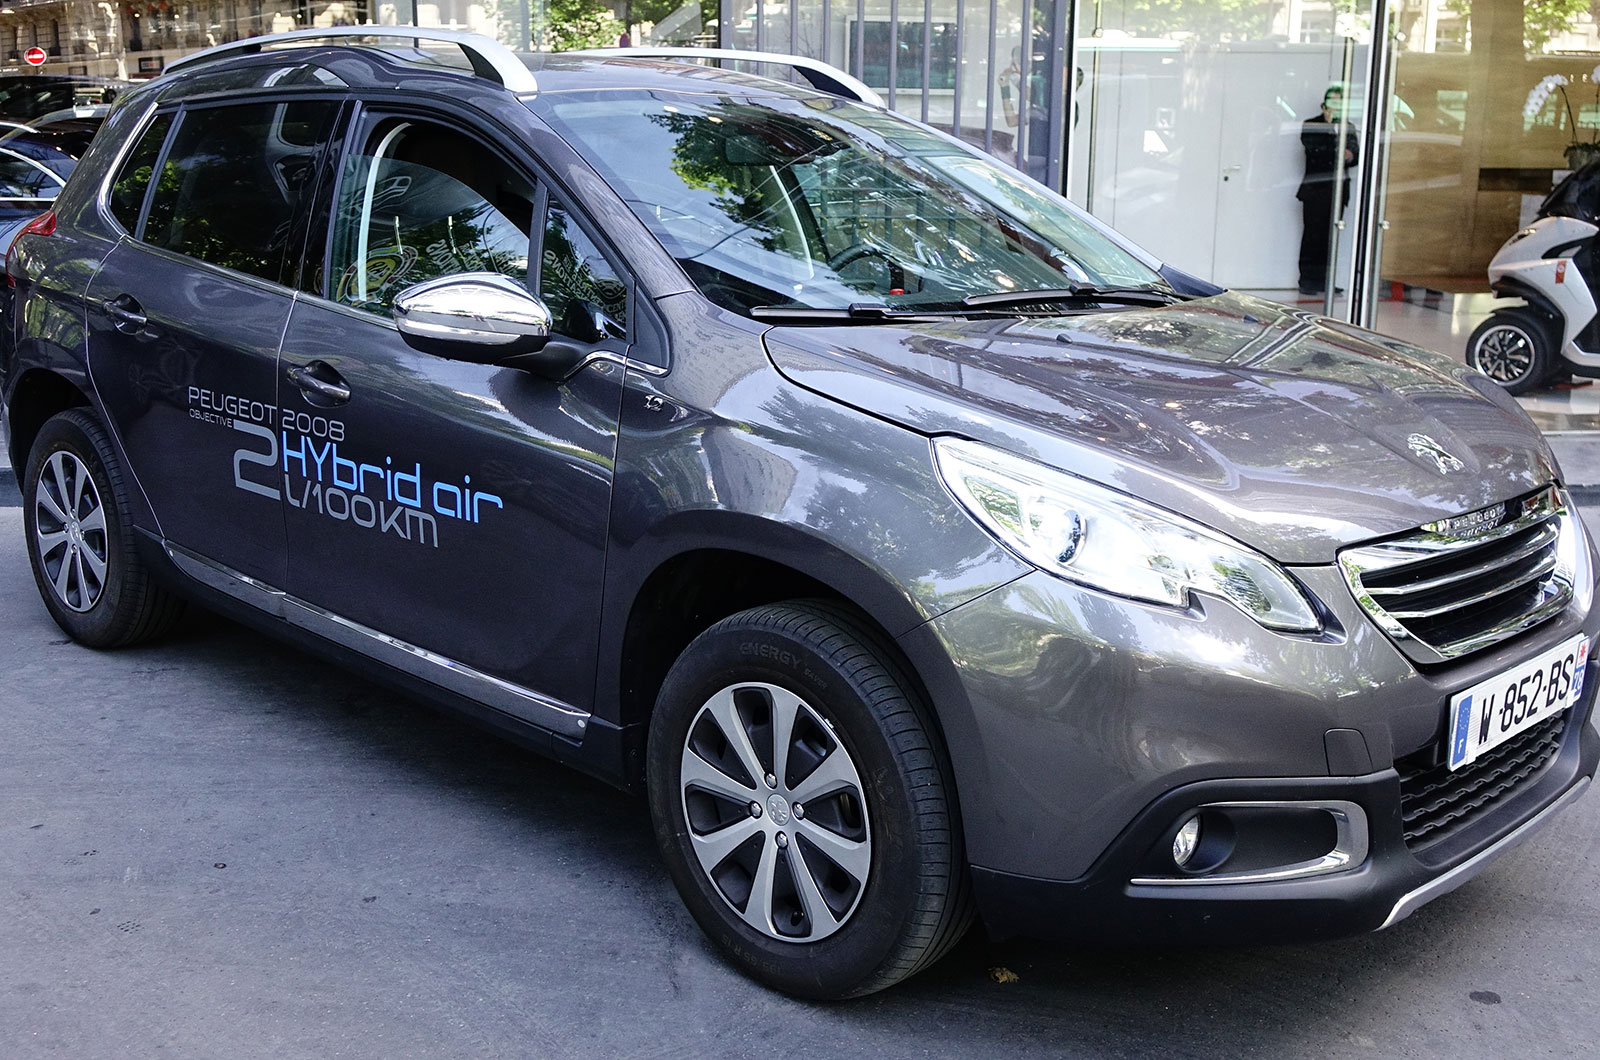 100  Car Maker Peugeot   Peugeot And Citroen Plan To Sell Cars